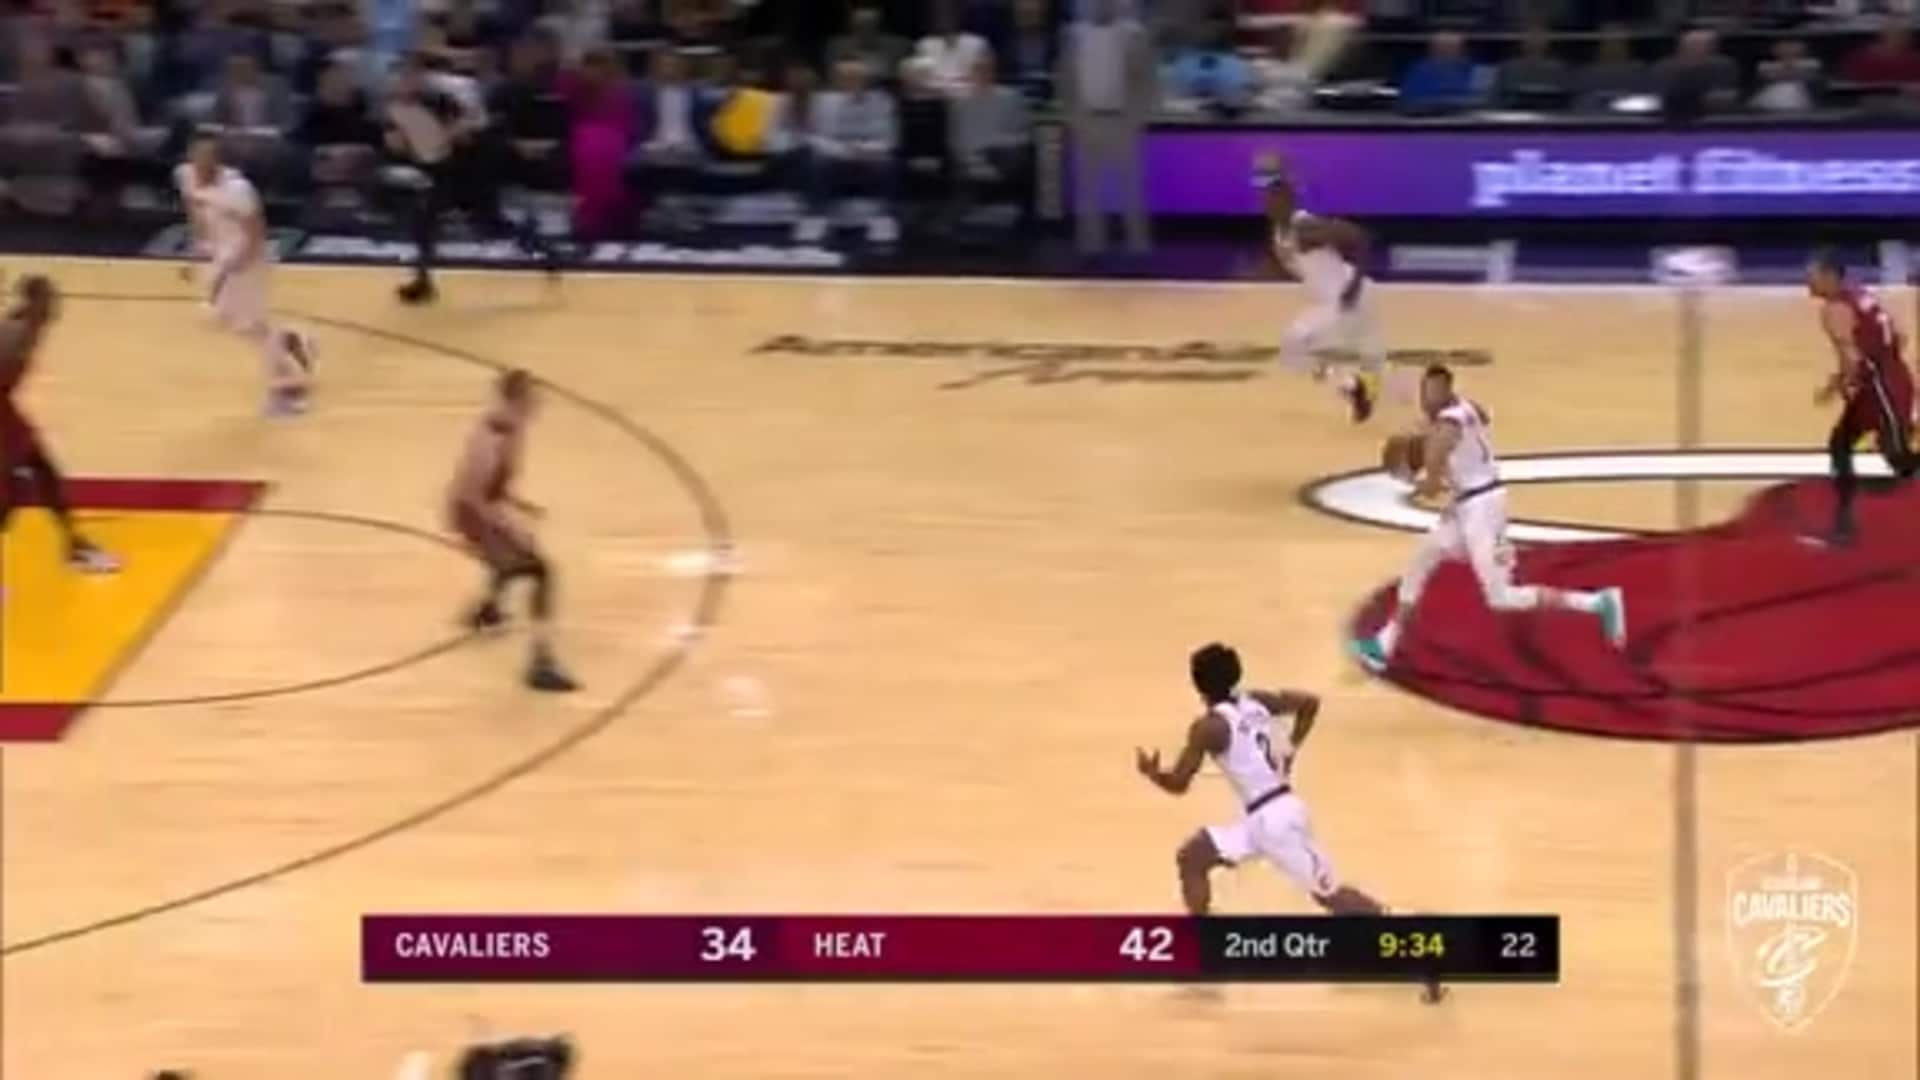 Sexton's Wrap Around Pass to Nance